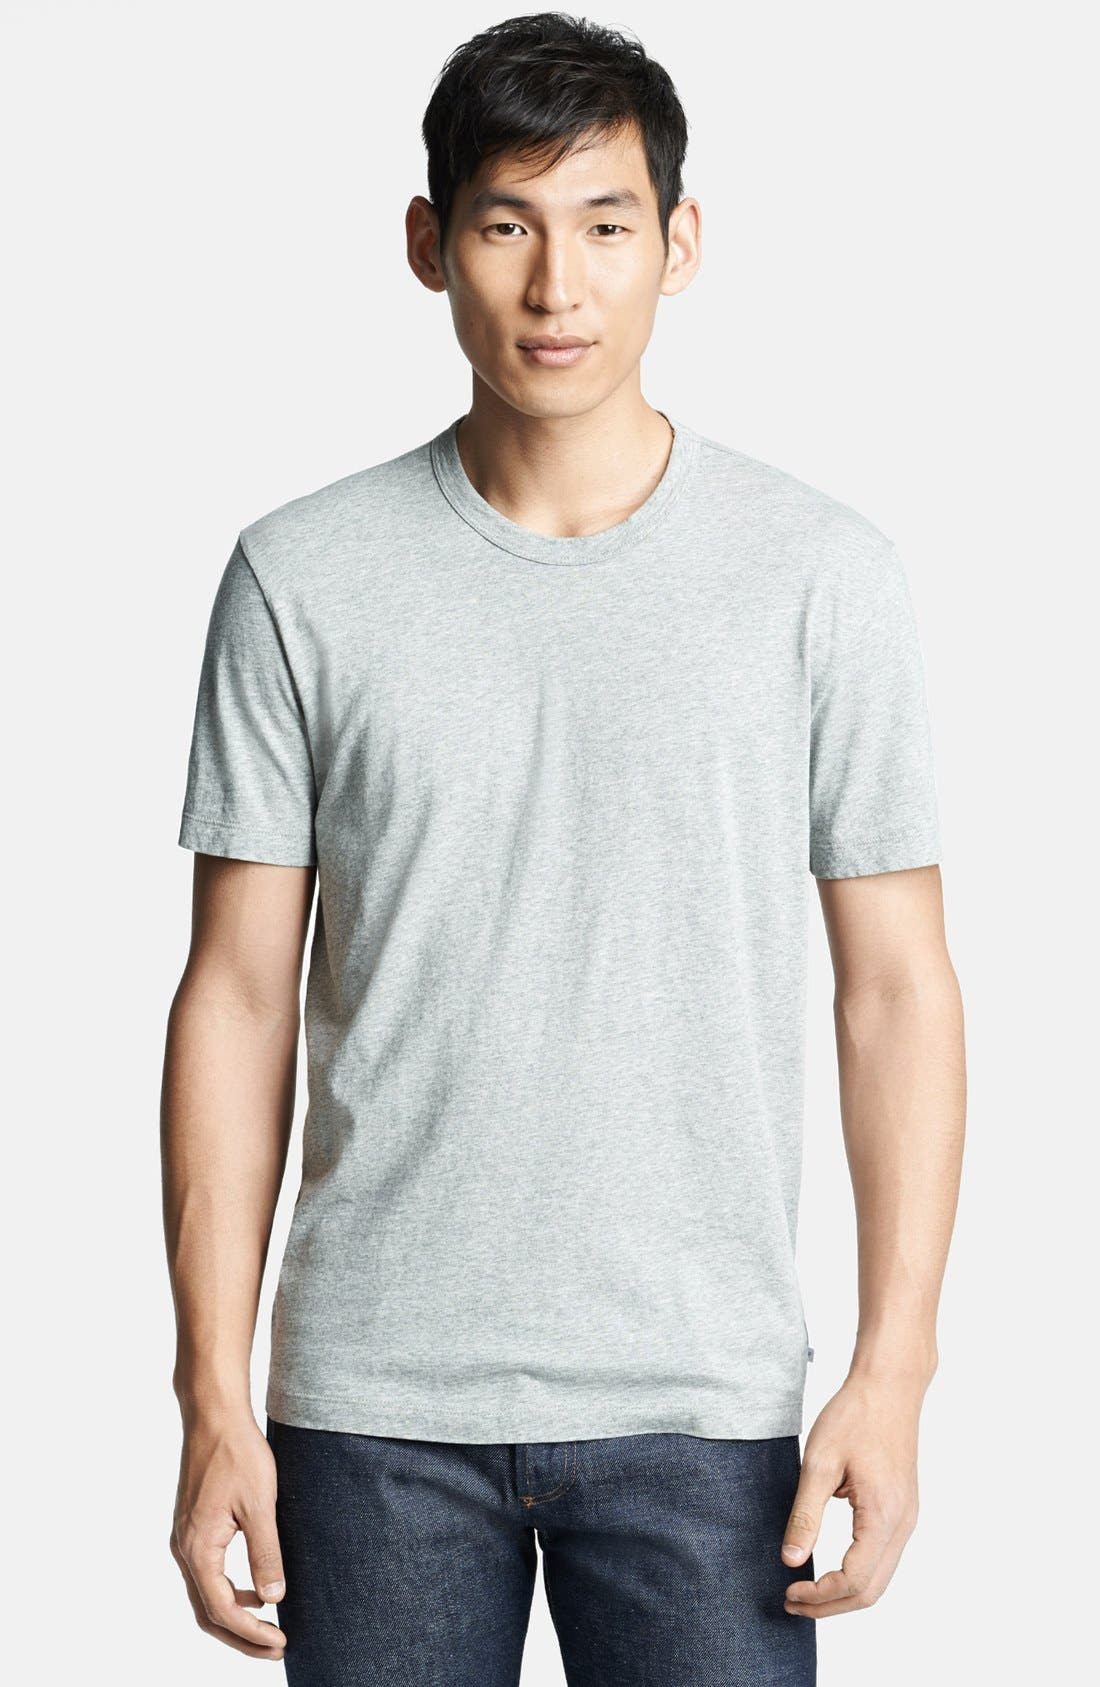 Alternate Image 1 Selected - James Perse 'Classic' Crewneck T-Shirt